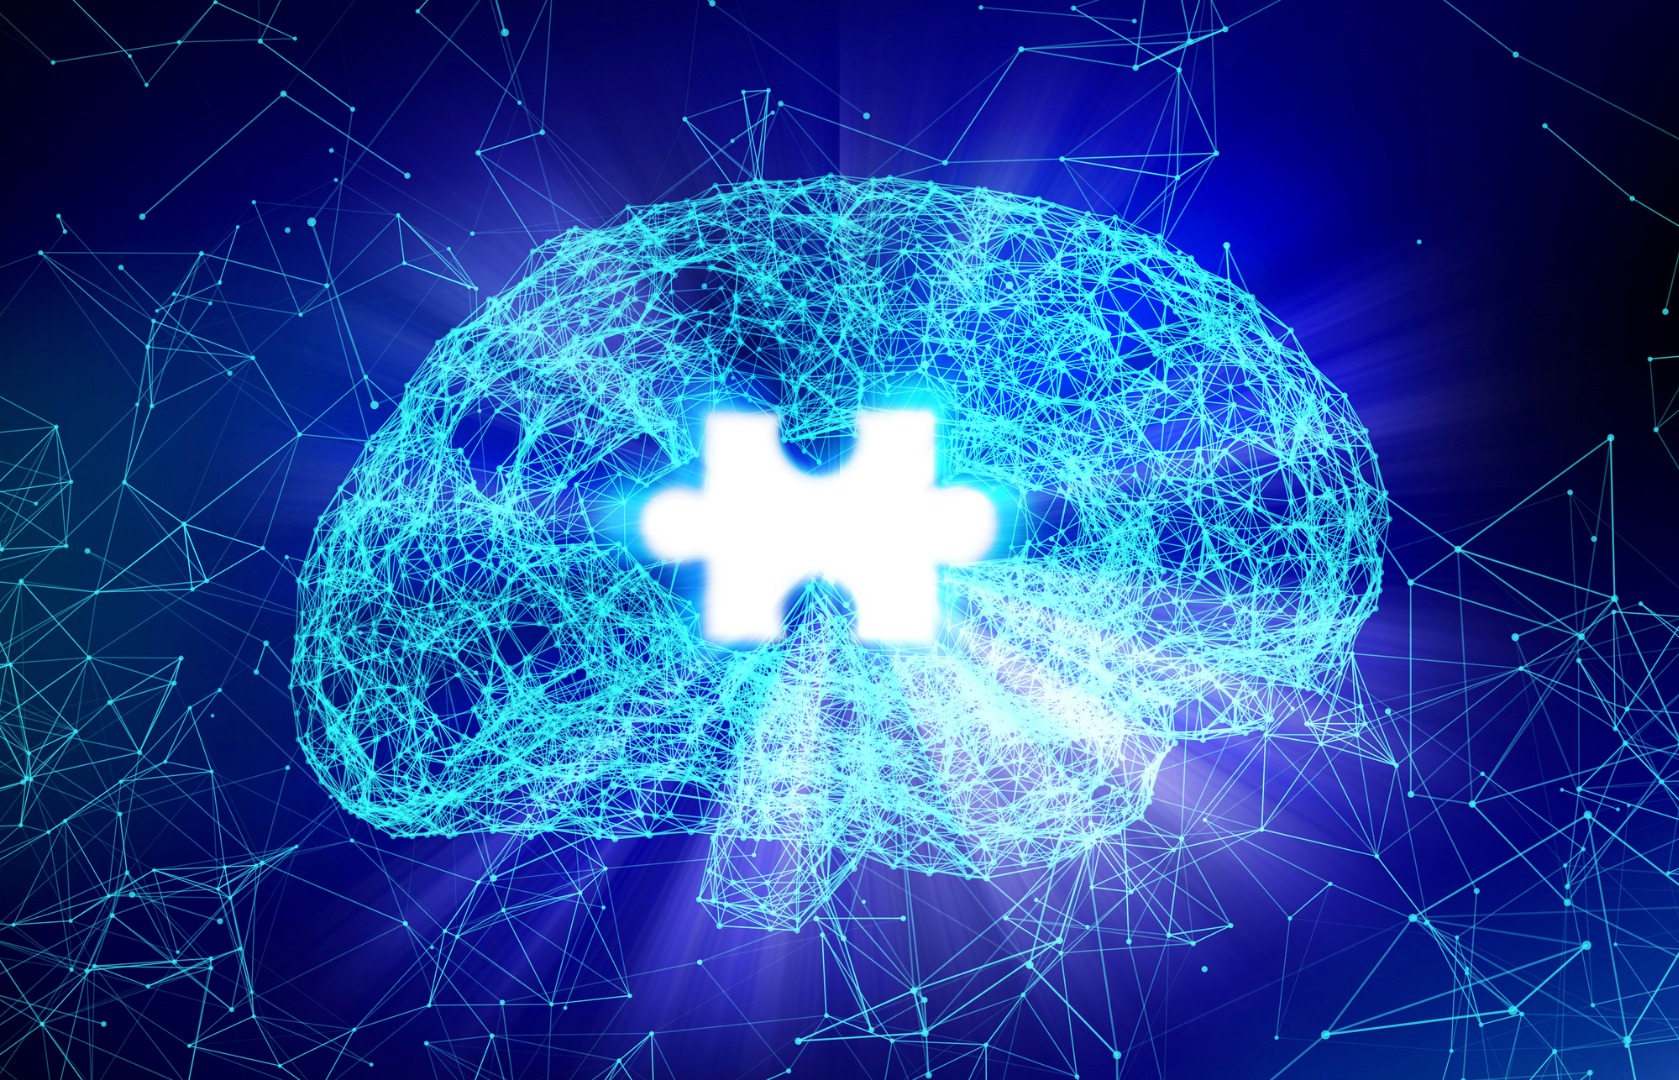 How giant neurons in the brain stimulate consciousness, awareness and cognition